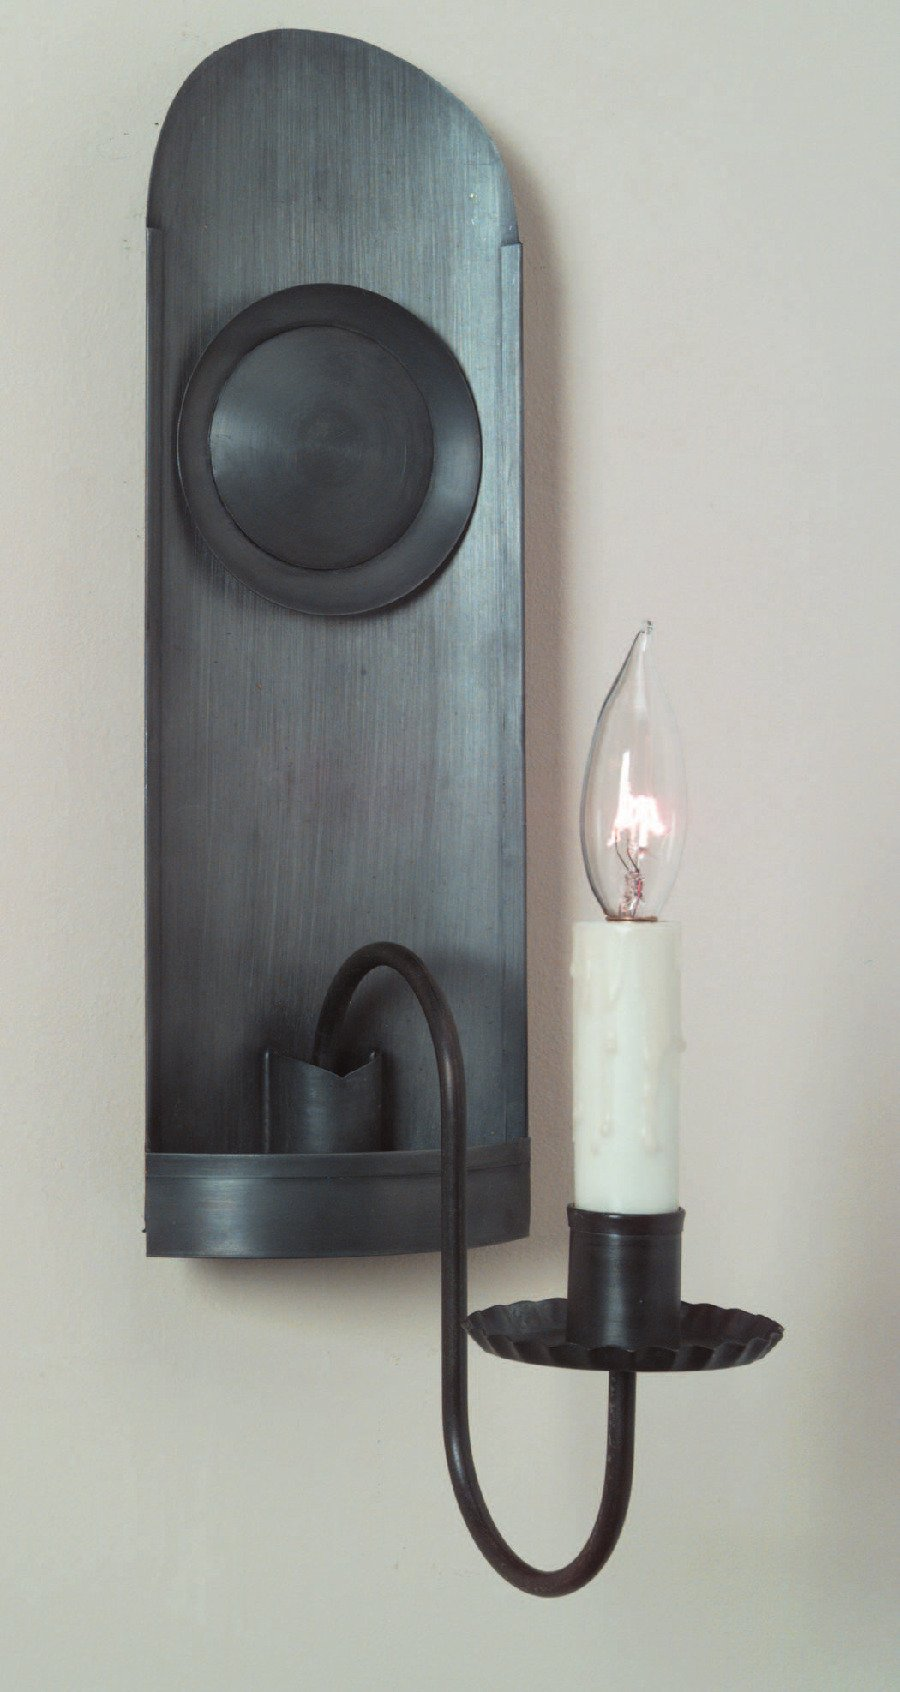 Handmade Rustic Style Wall Sconce S131A